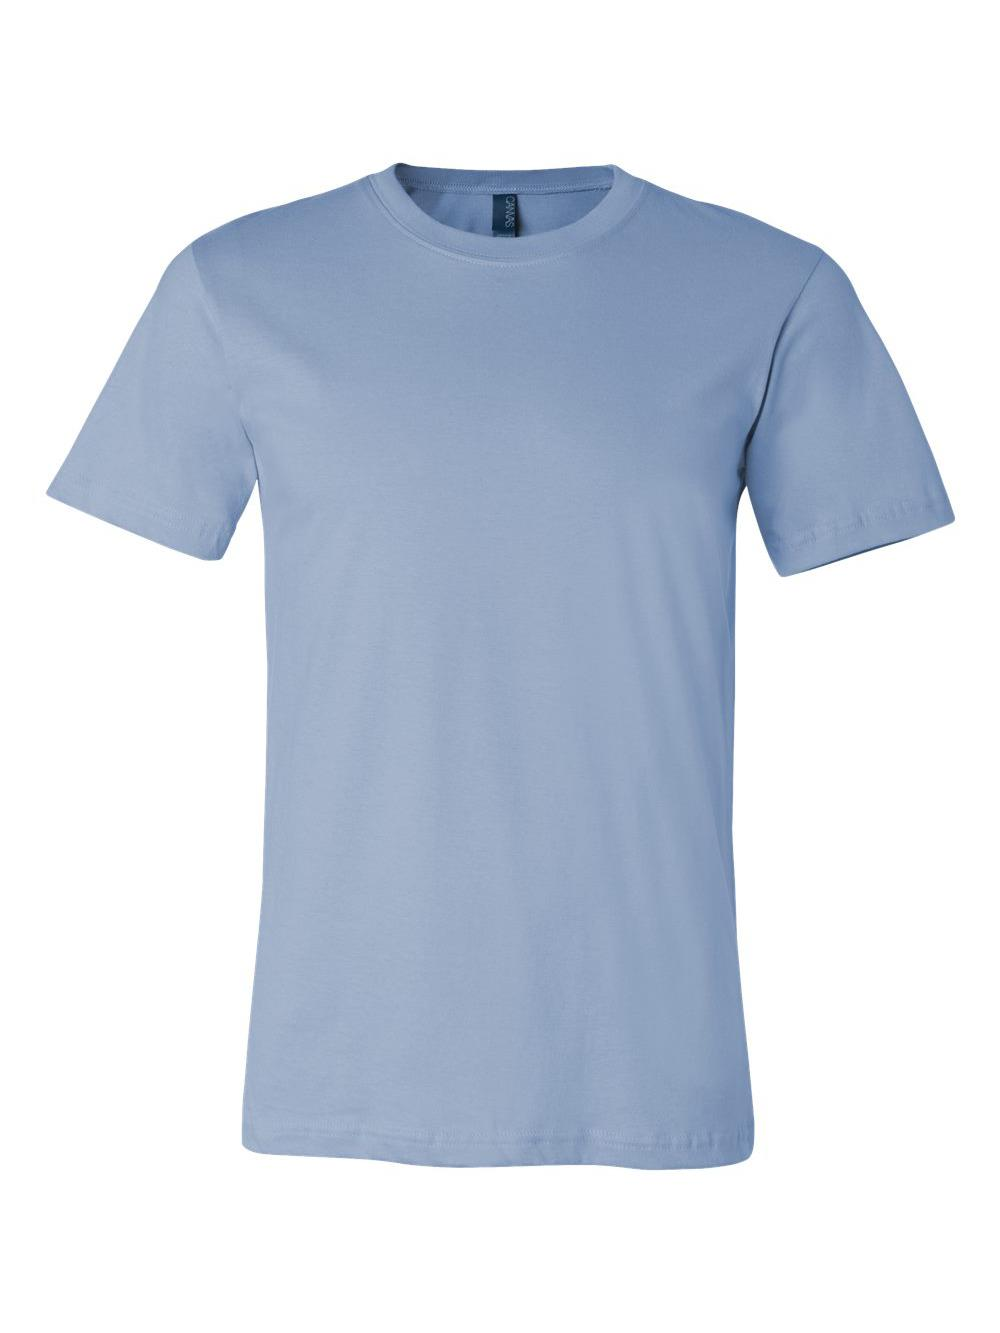 Bella-Canvas-Unisex-Short-Sleeve-Jersey-Tee-3001 thumbnail 15